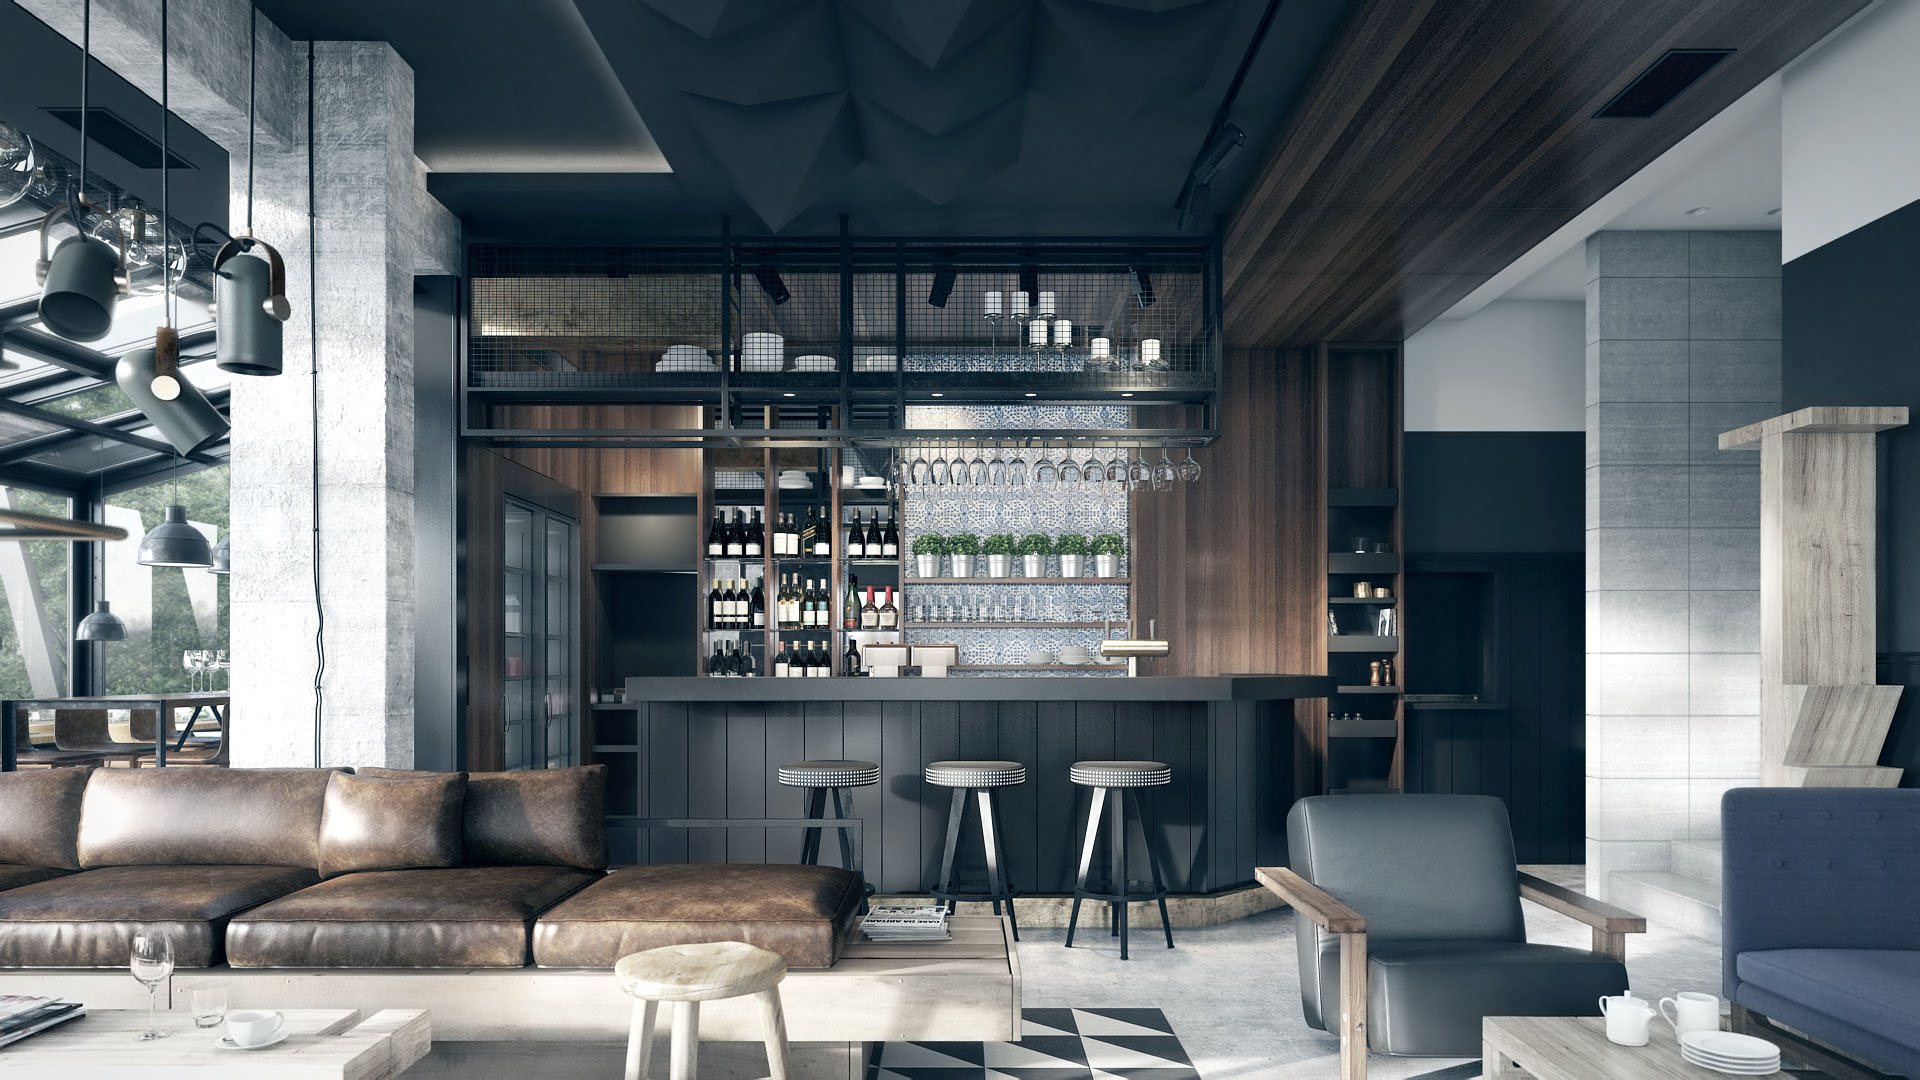 3d Home Design Pedjapetkovic | Mountain Hotel Restaurant Interior